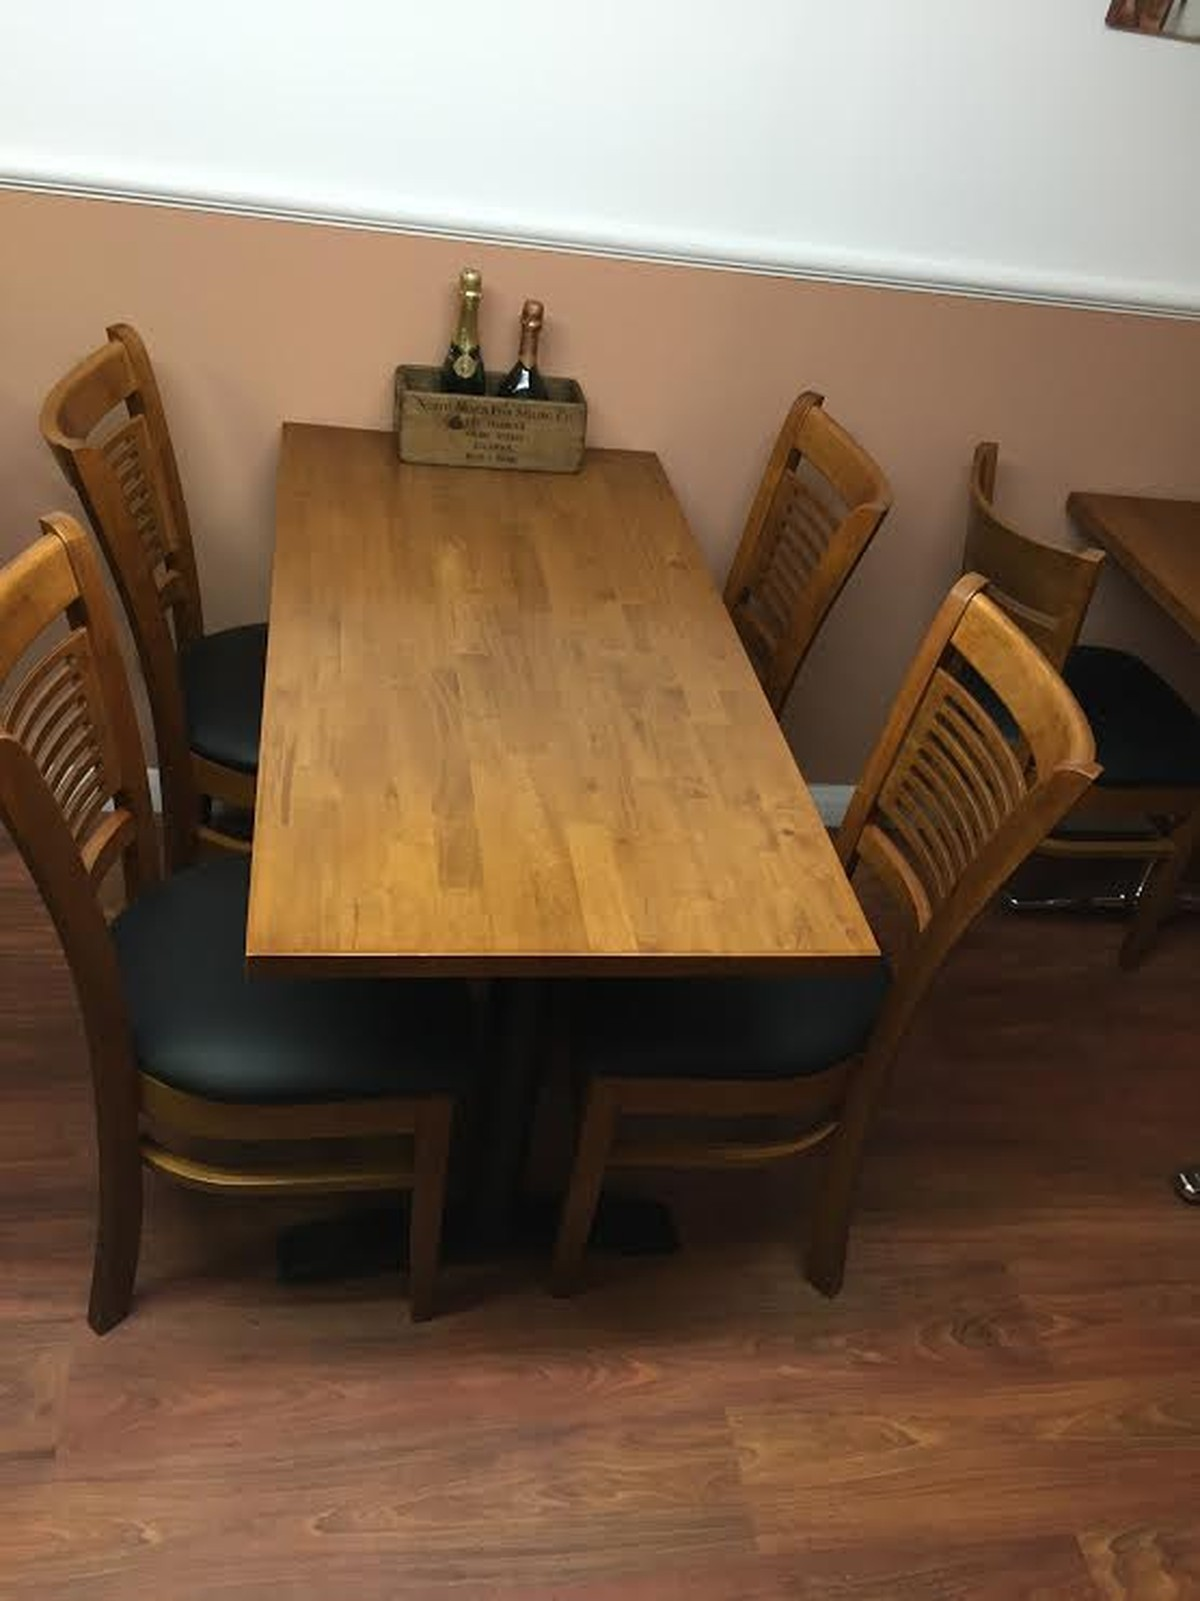 Secondhand Pub Equipment Pub Tables New Solid Wood And